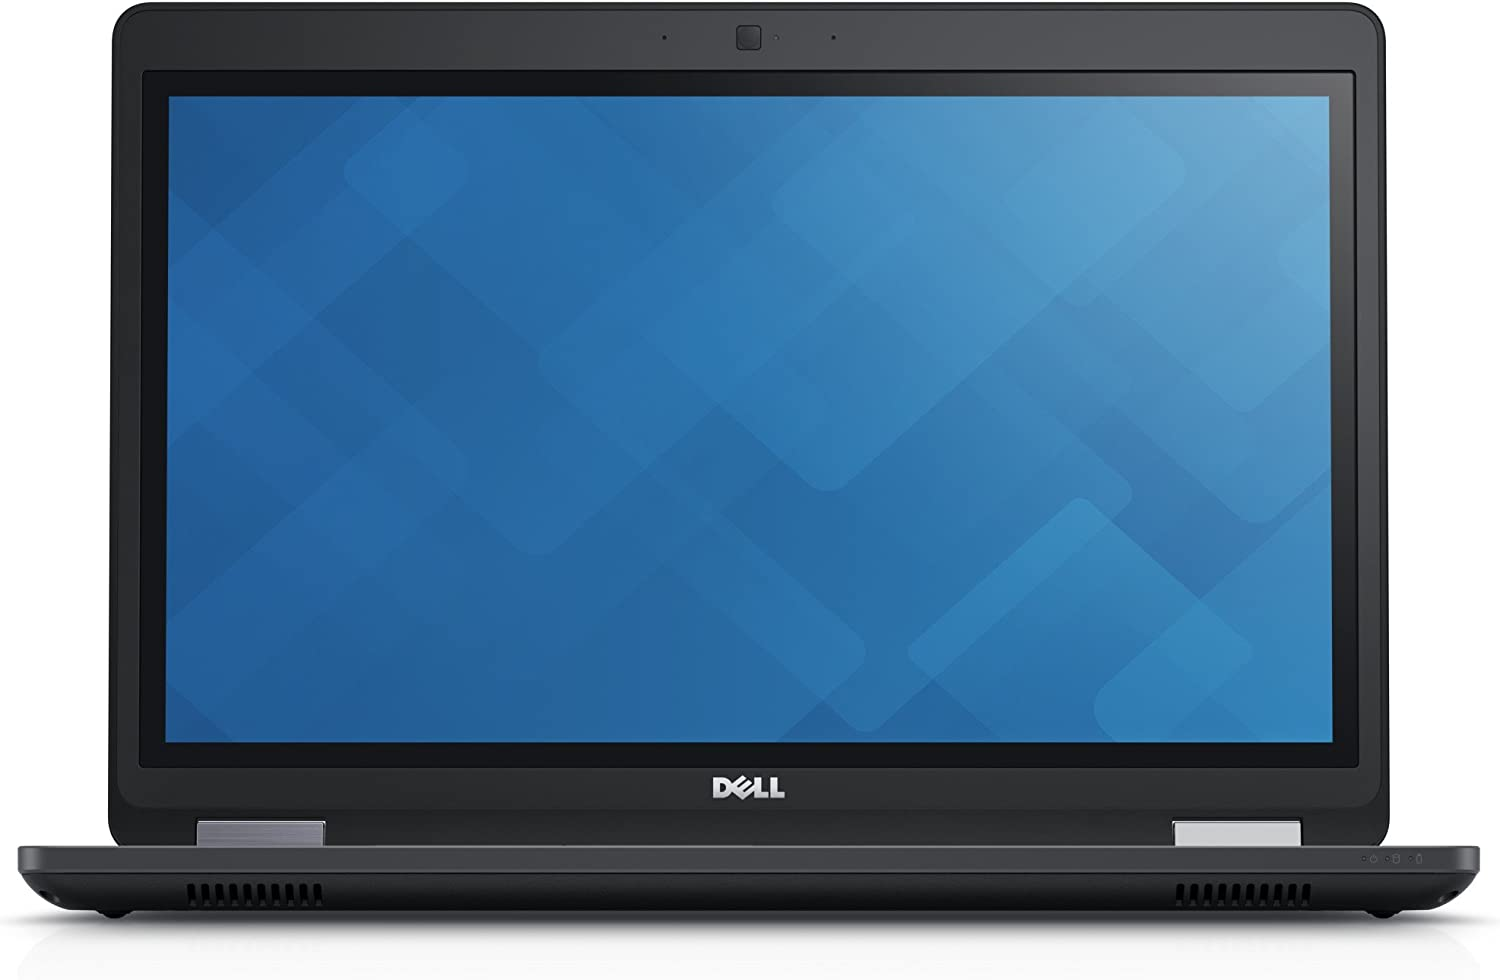 Dell Precision M3510 | I5-6300HQ | 8GB DDR4 RAM | 256GB M.2 SSD | AMD FirePro W5130M